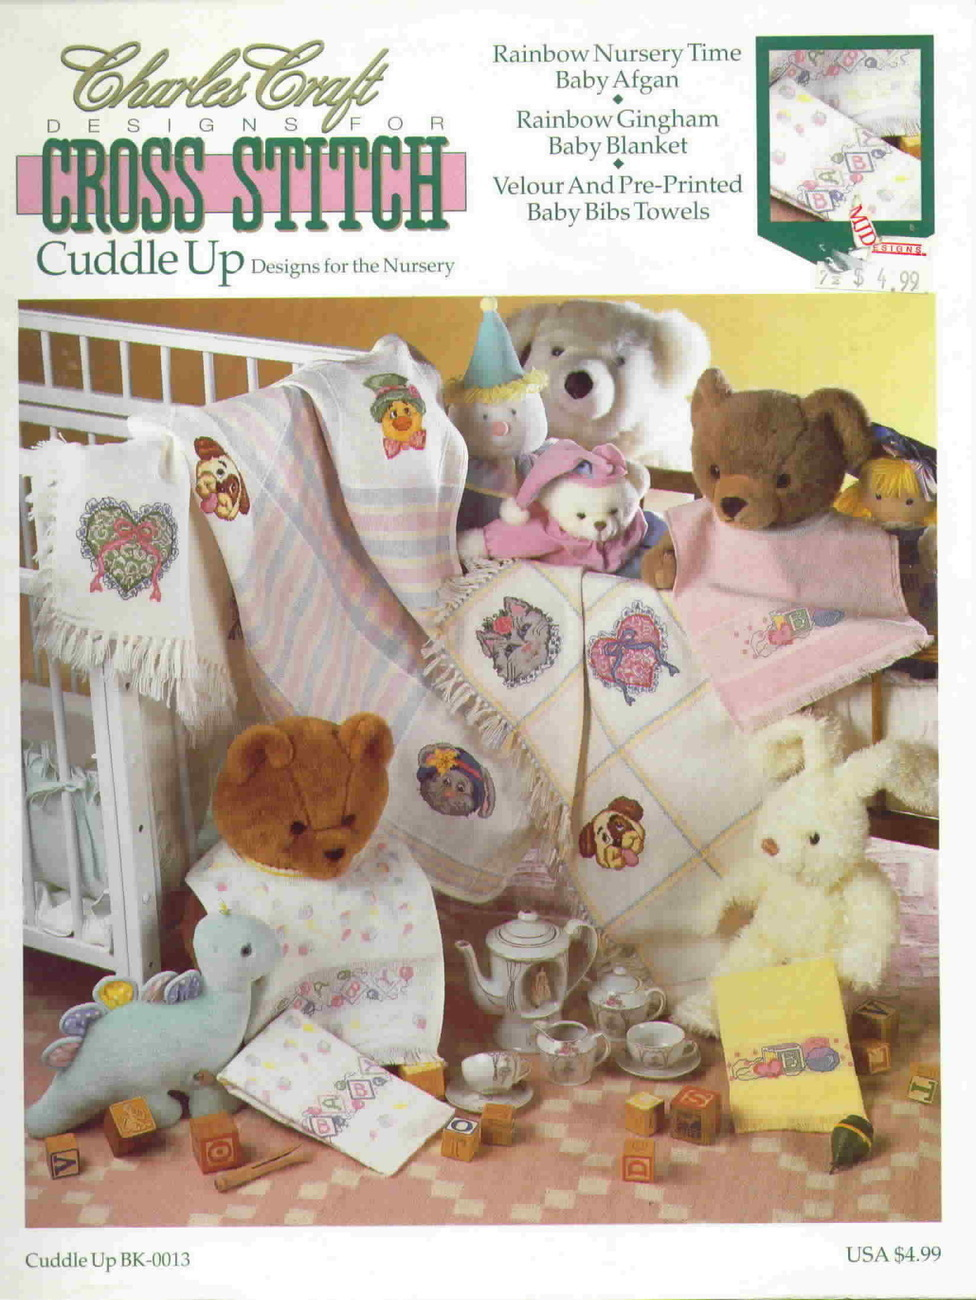 Charles Craft Designs for Cross Stitch Cuddle Up Designs for the ...